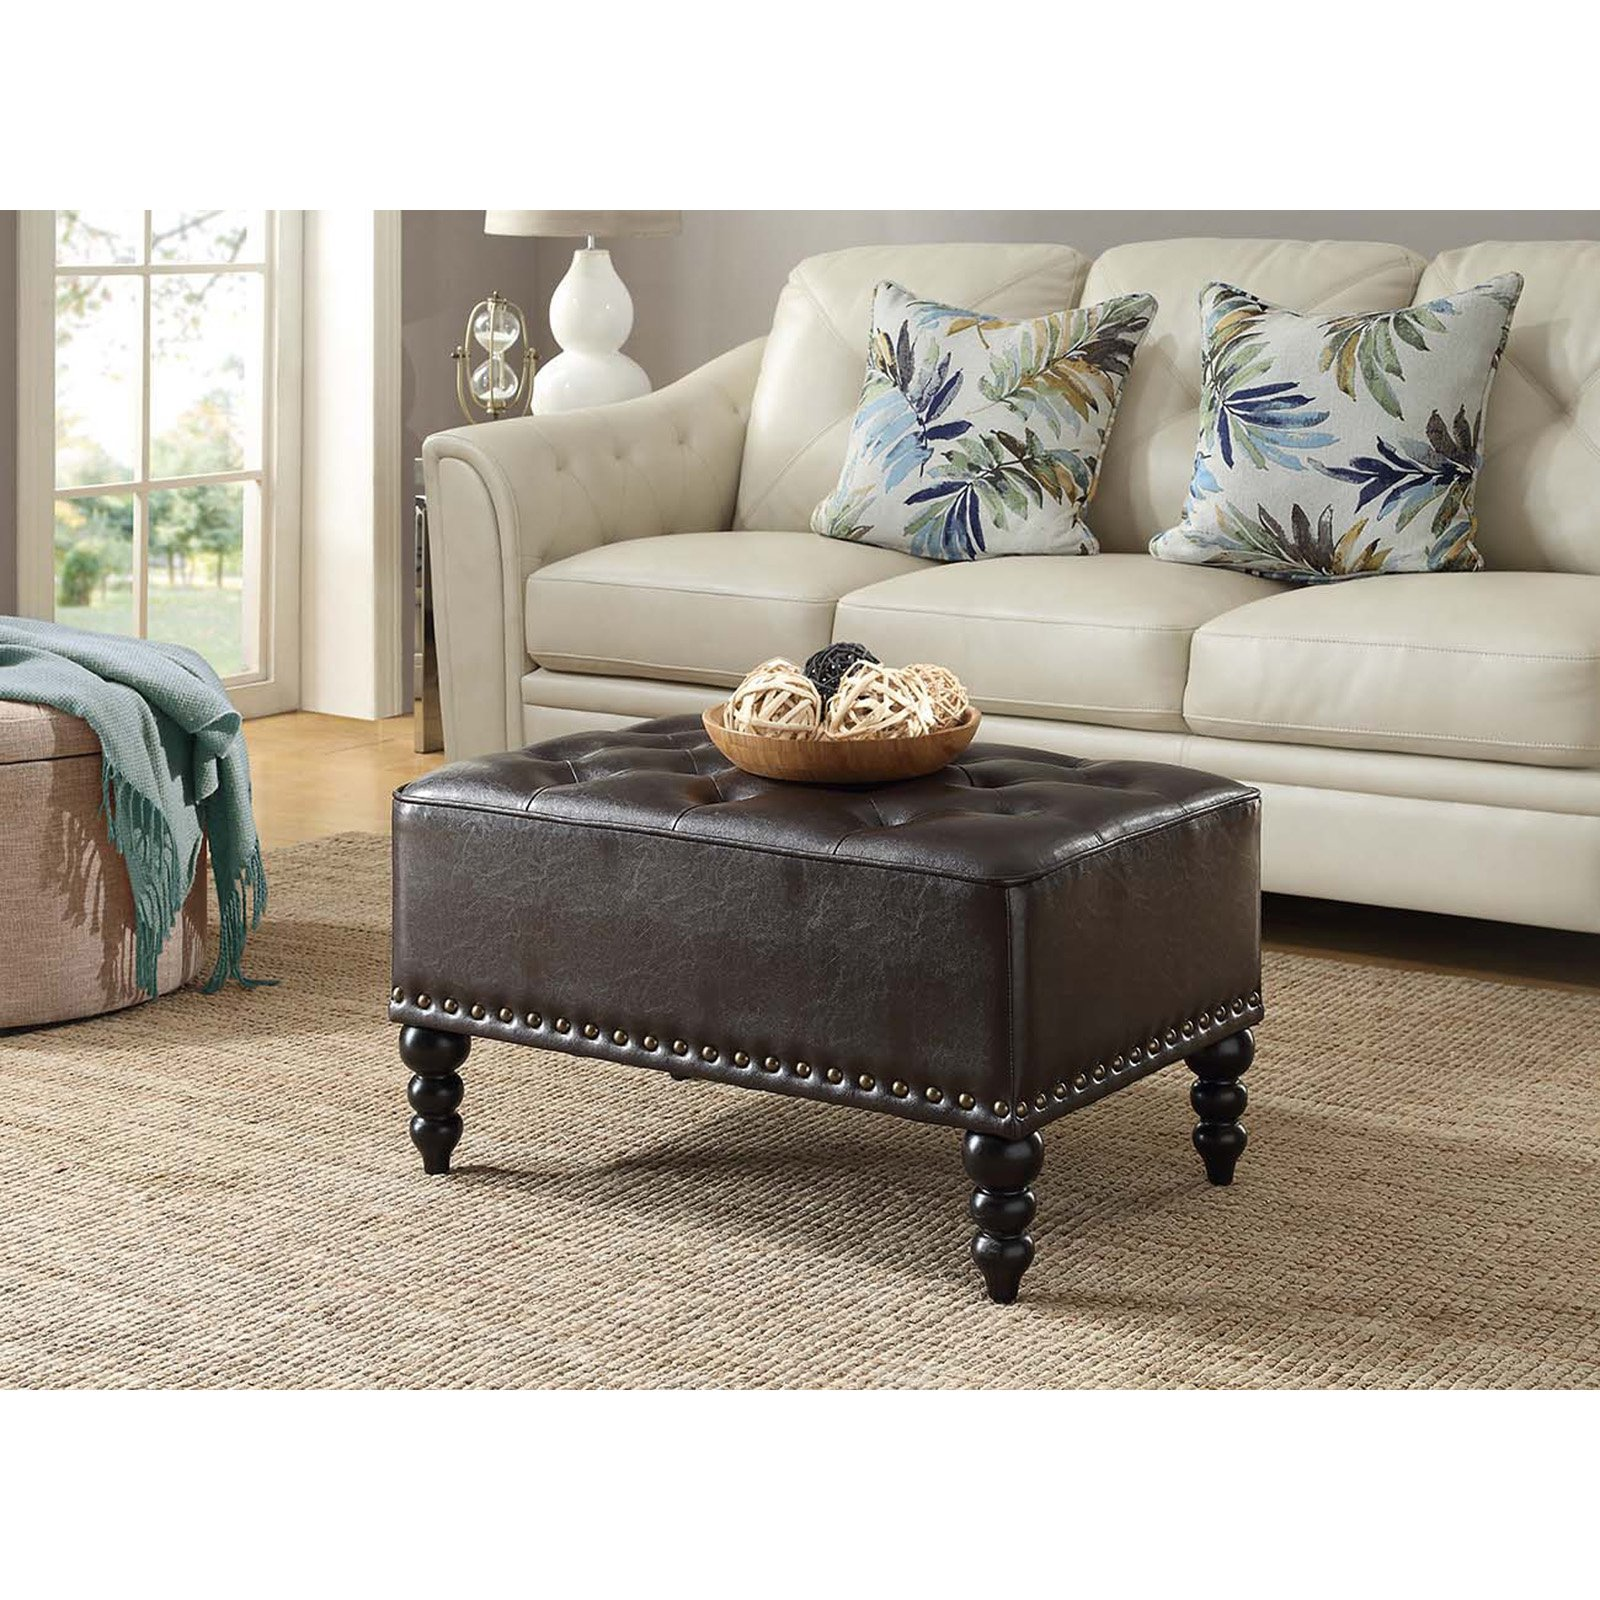 Convenience Concepts Designs4Comfort No Tools Portman Tufted Ottoman